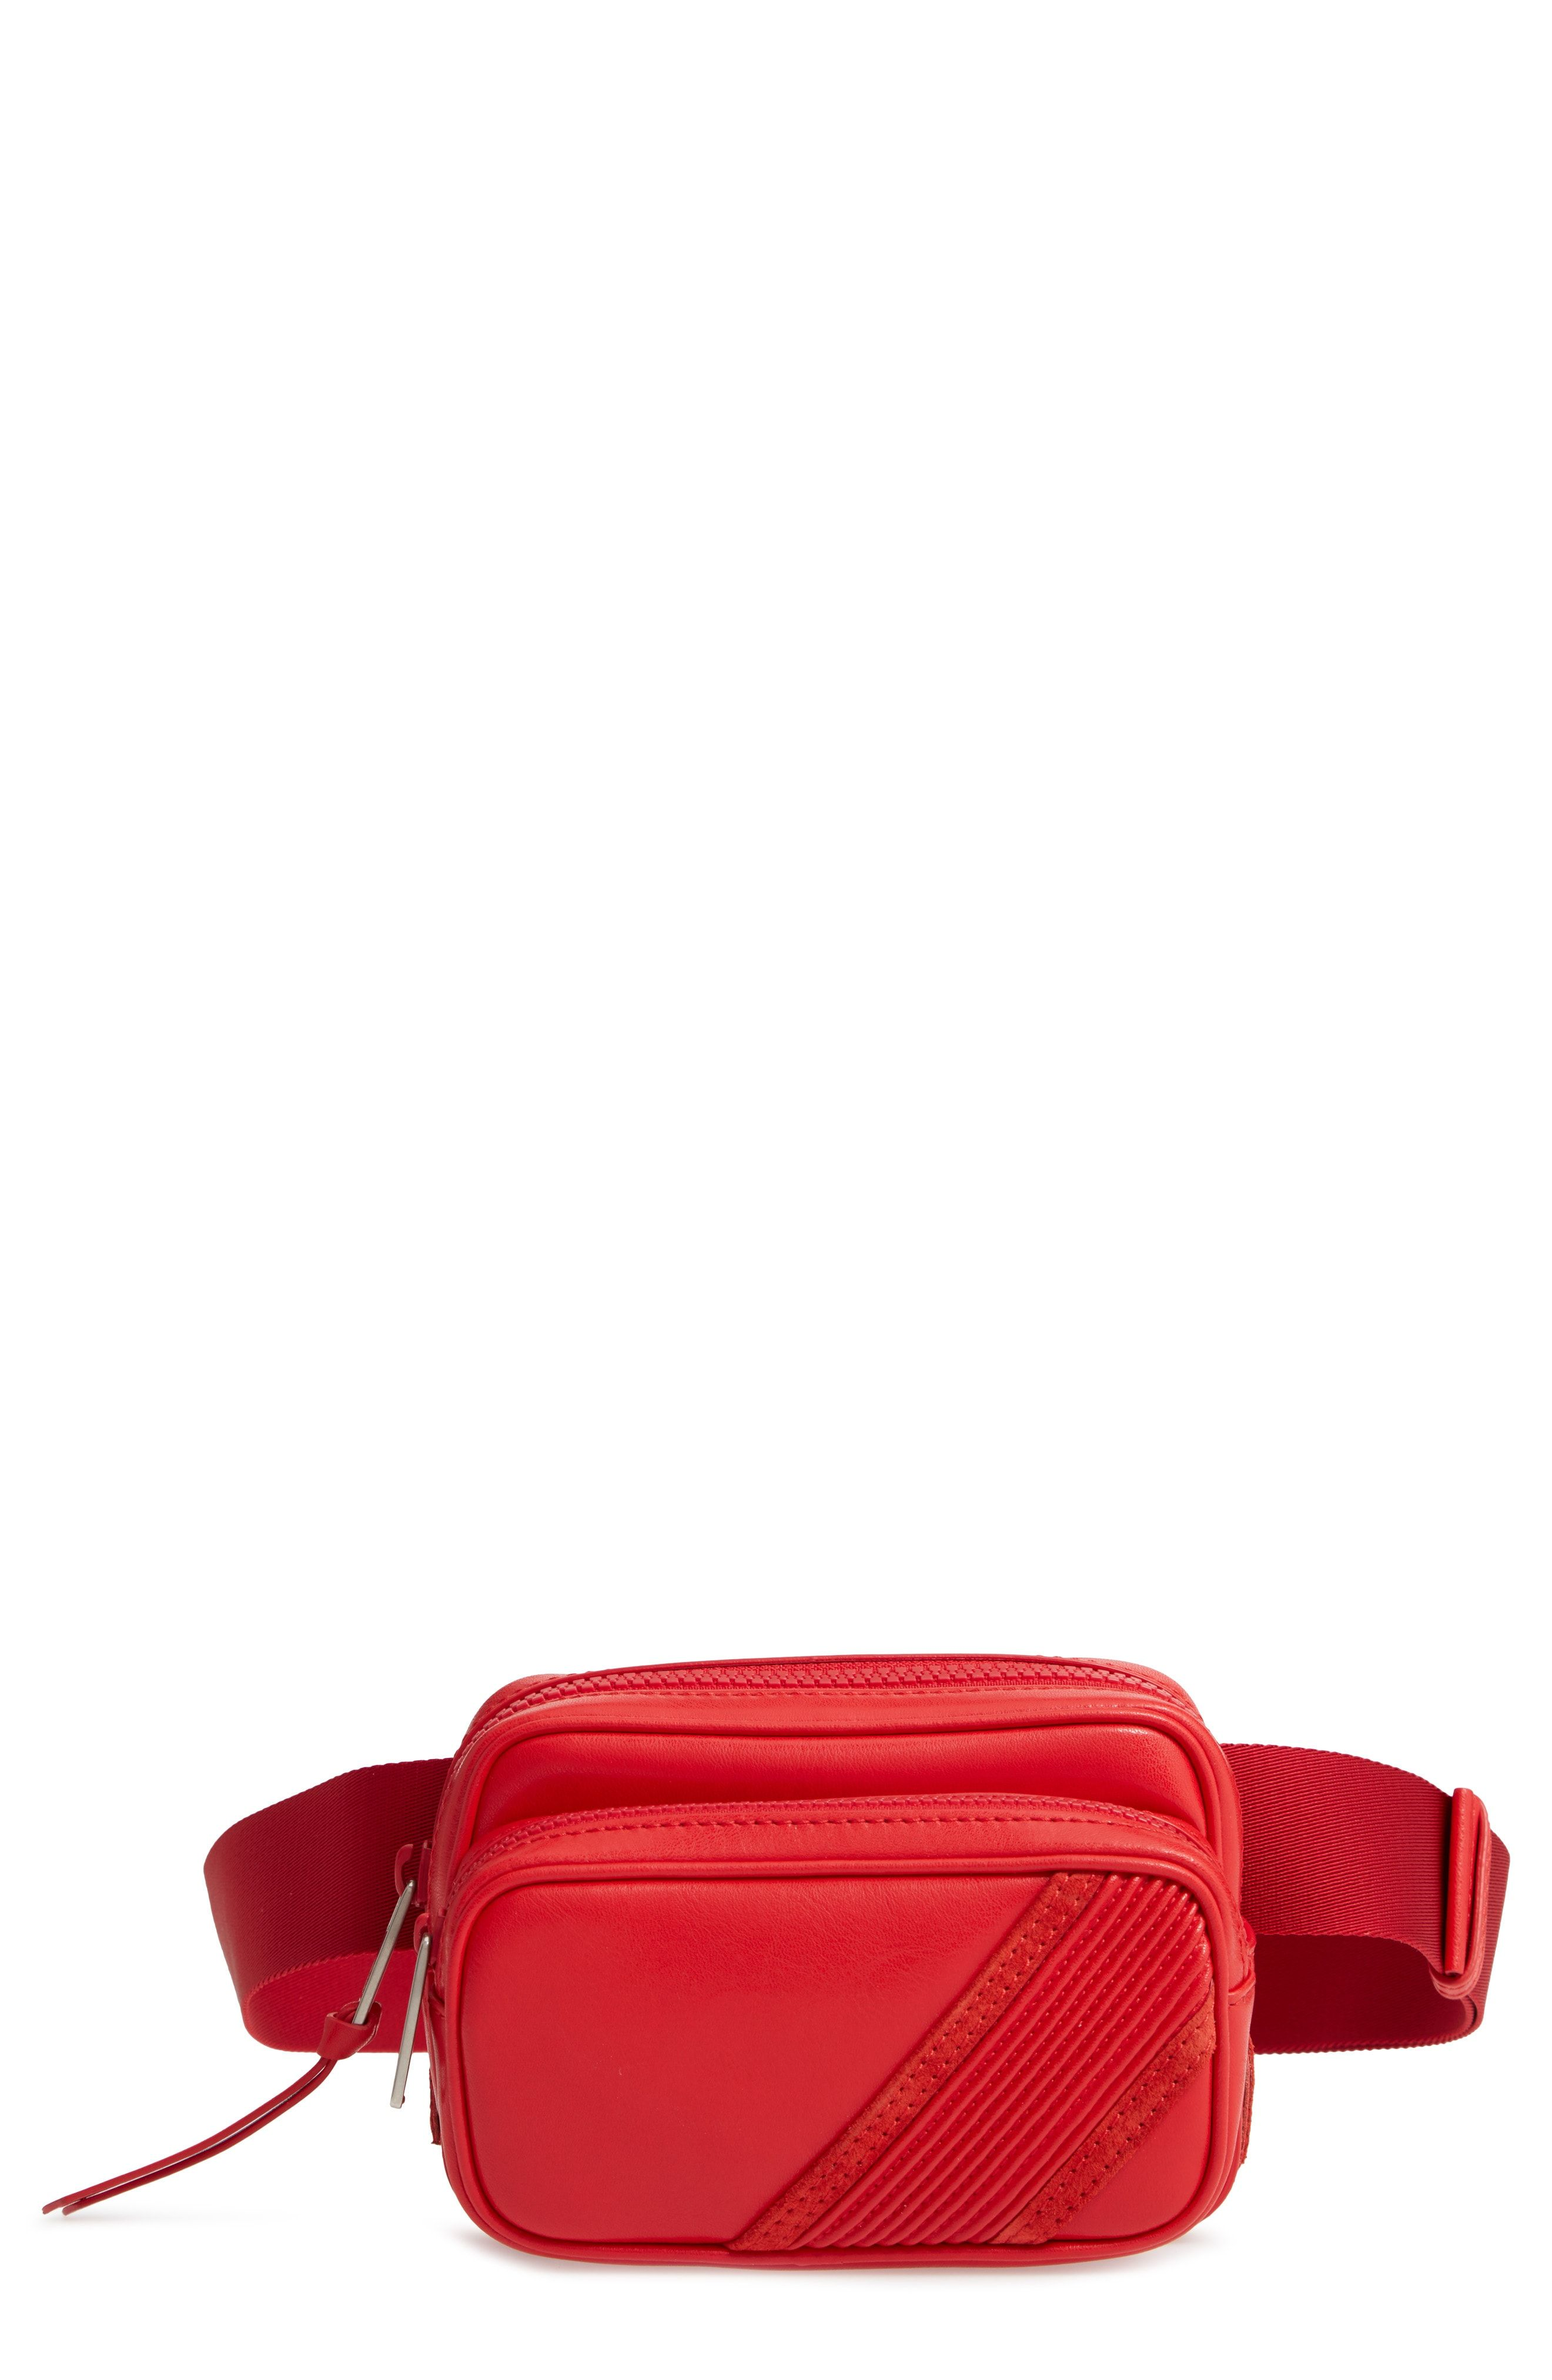 feffc7a1893b5c GIVENCHY MC3 CROSSBODY BAG - RED. #givenchy #bags #shoulder bags #crossbody